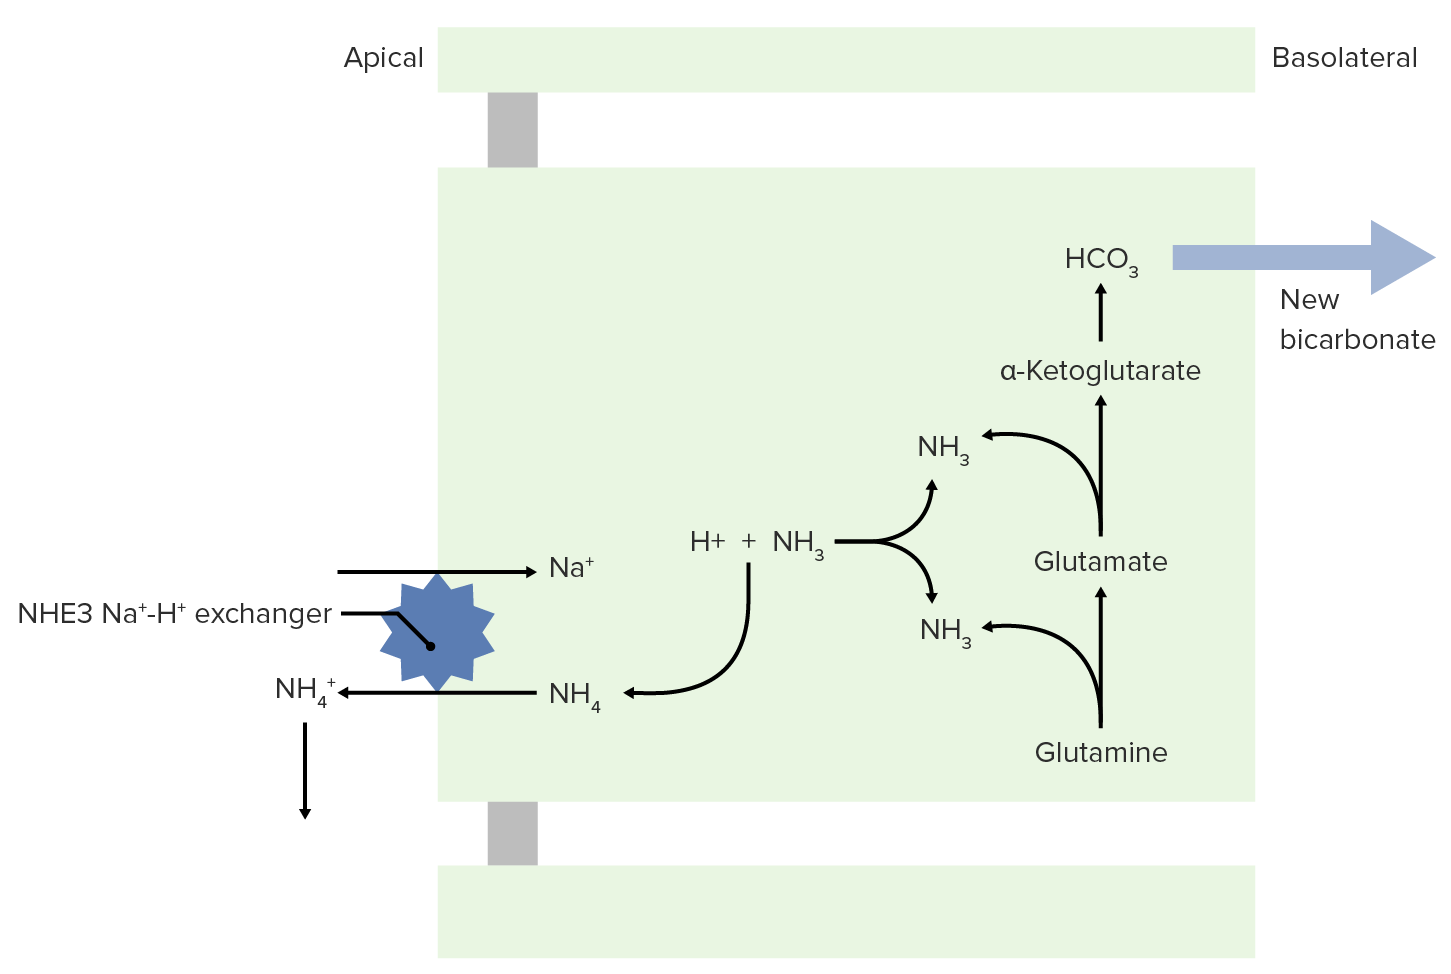 NH3 and NH4+ transport to the lumen for excretion